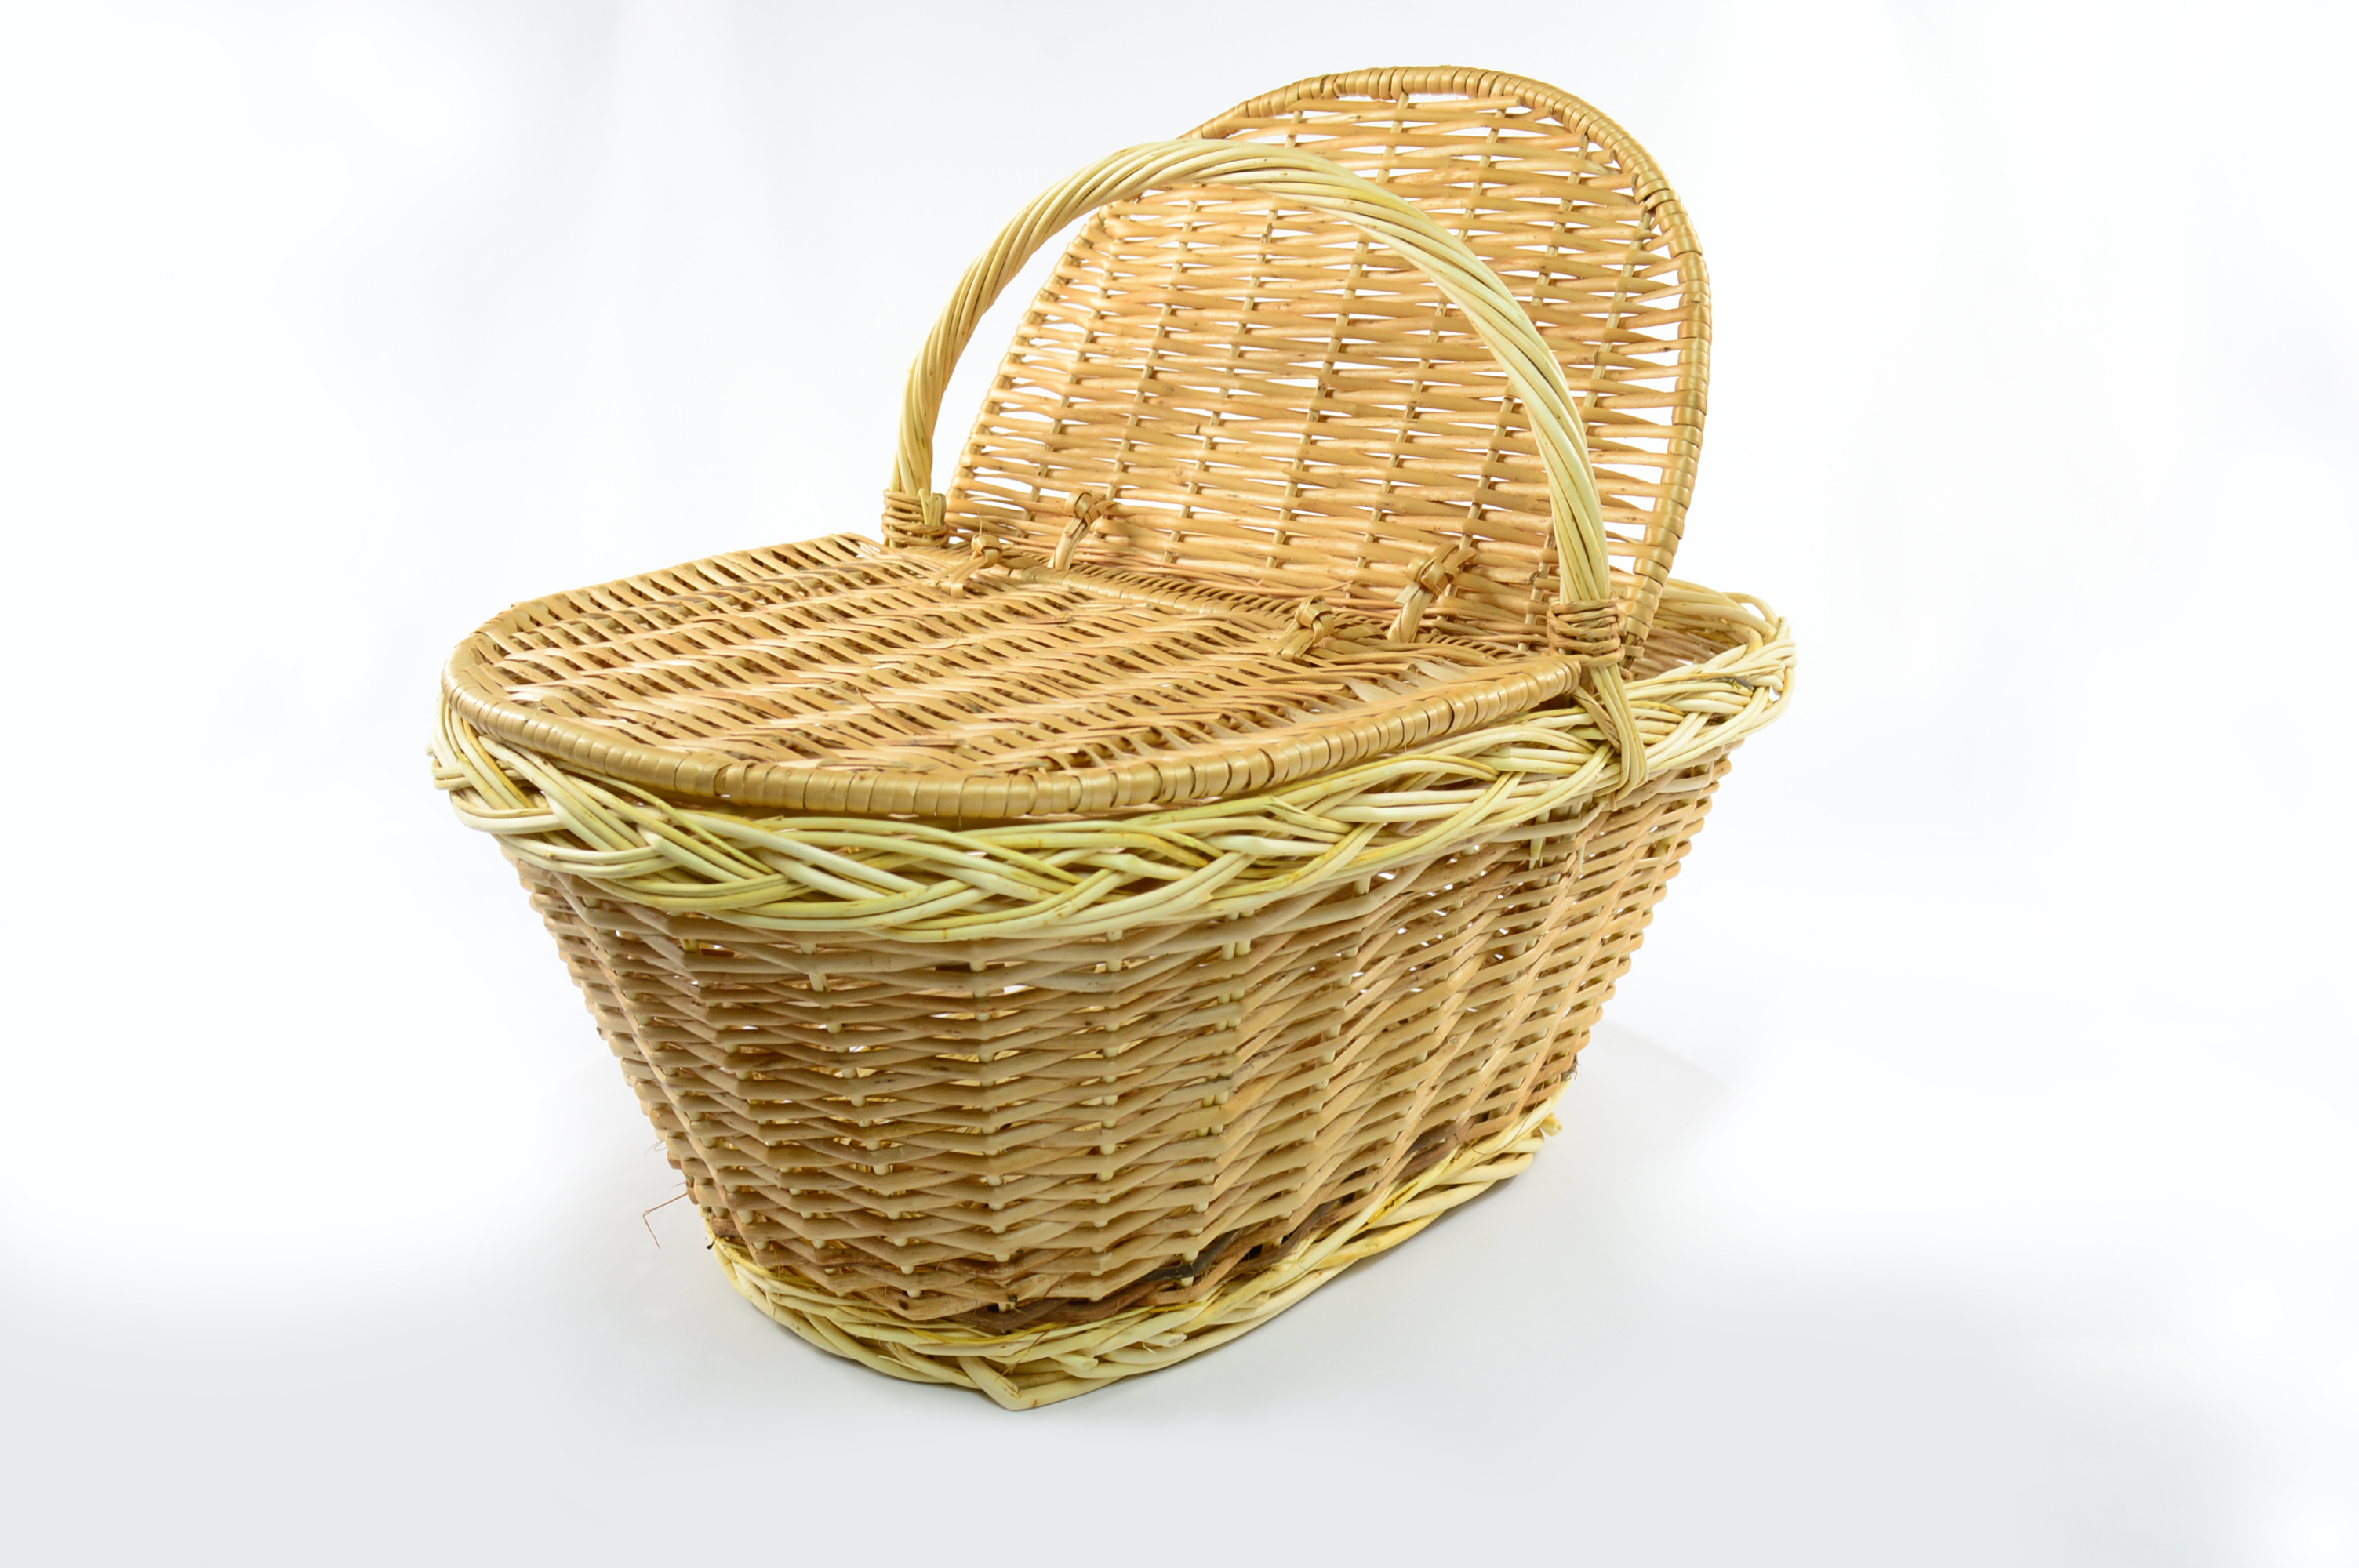 xxl woven wicker picnic basket with handle lid willow traditional storage hamper 5060469620961. Black Bedroom Furniture Sets. Home Design Ideas